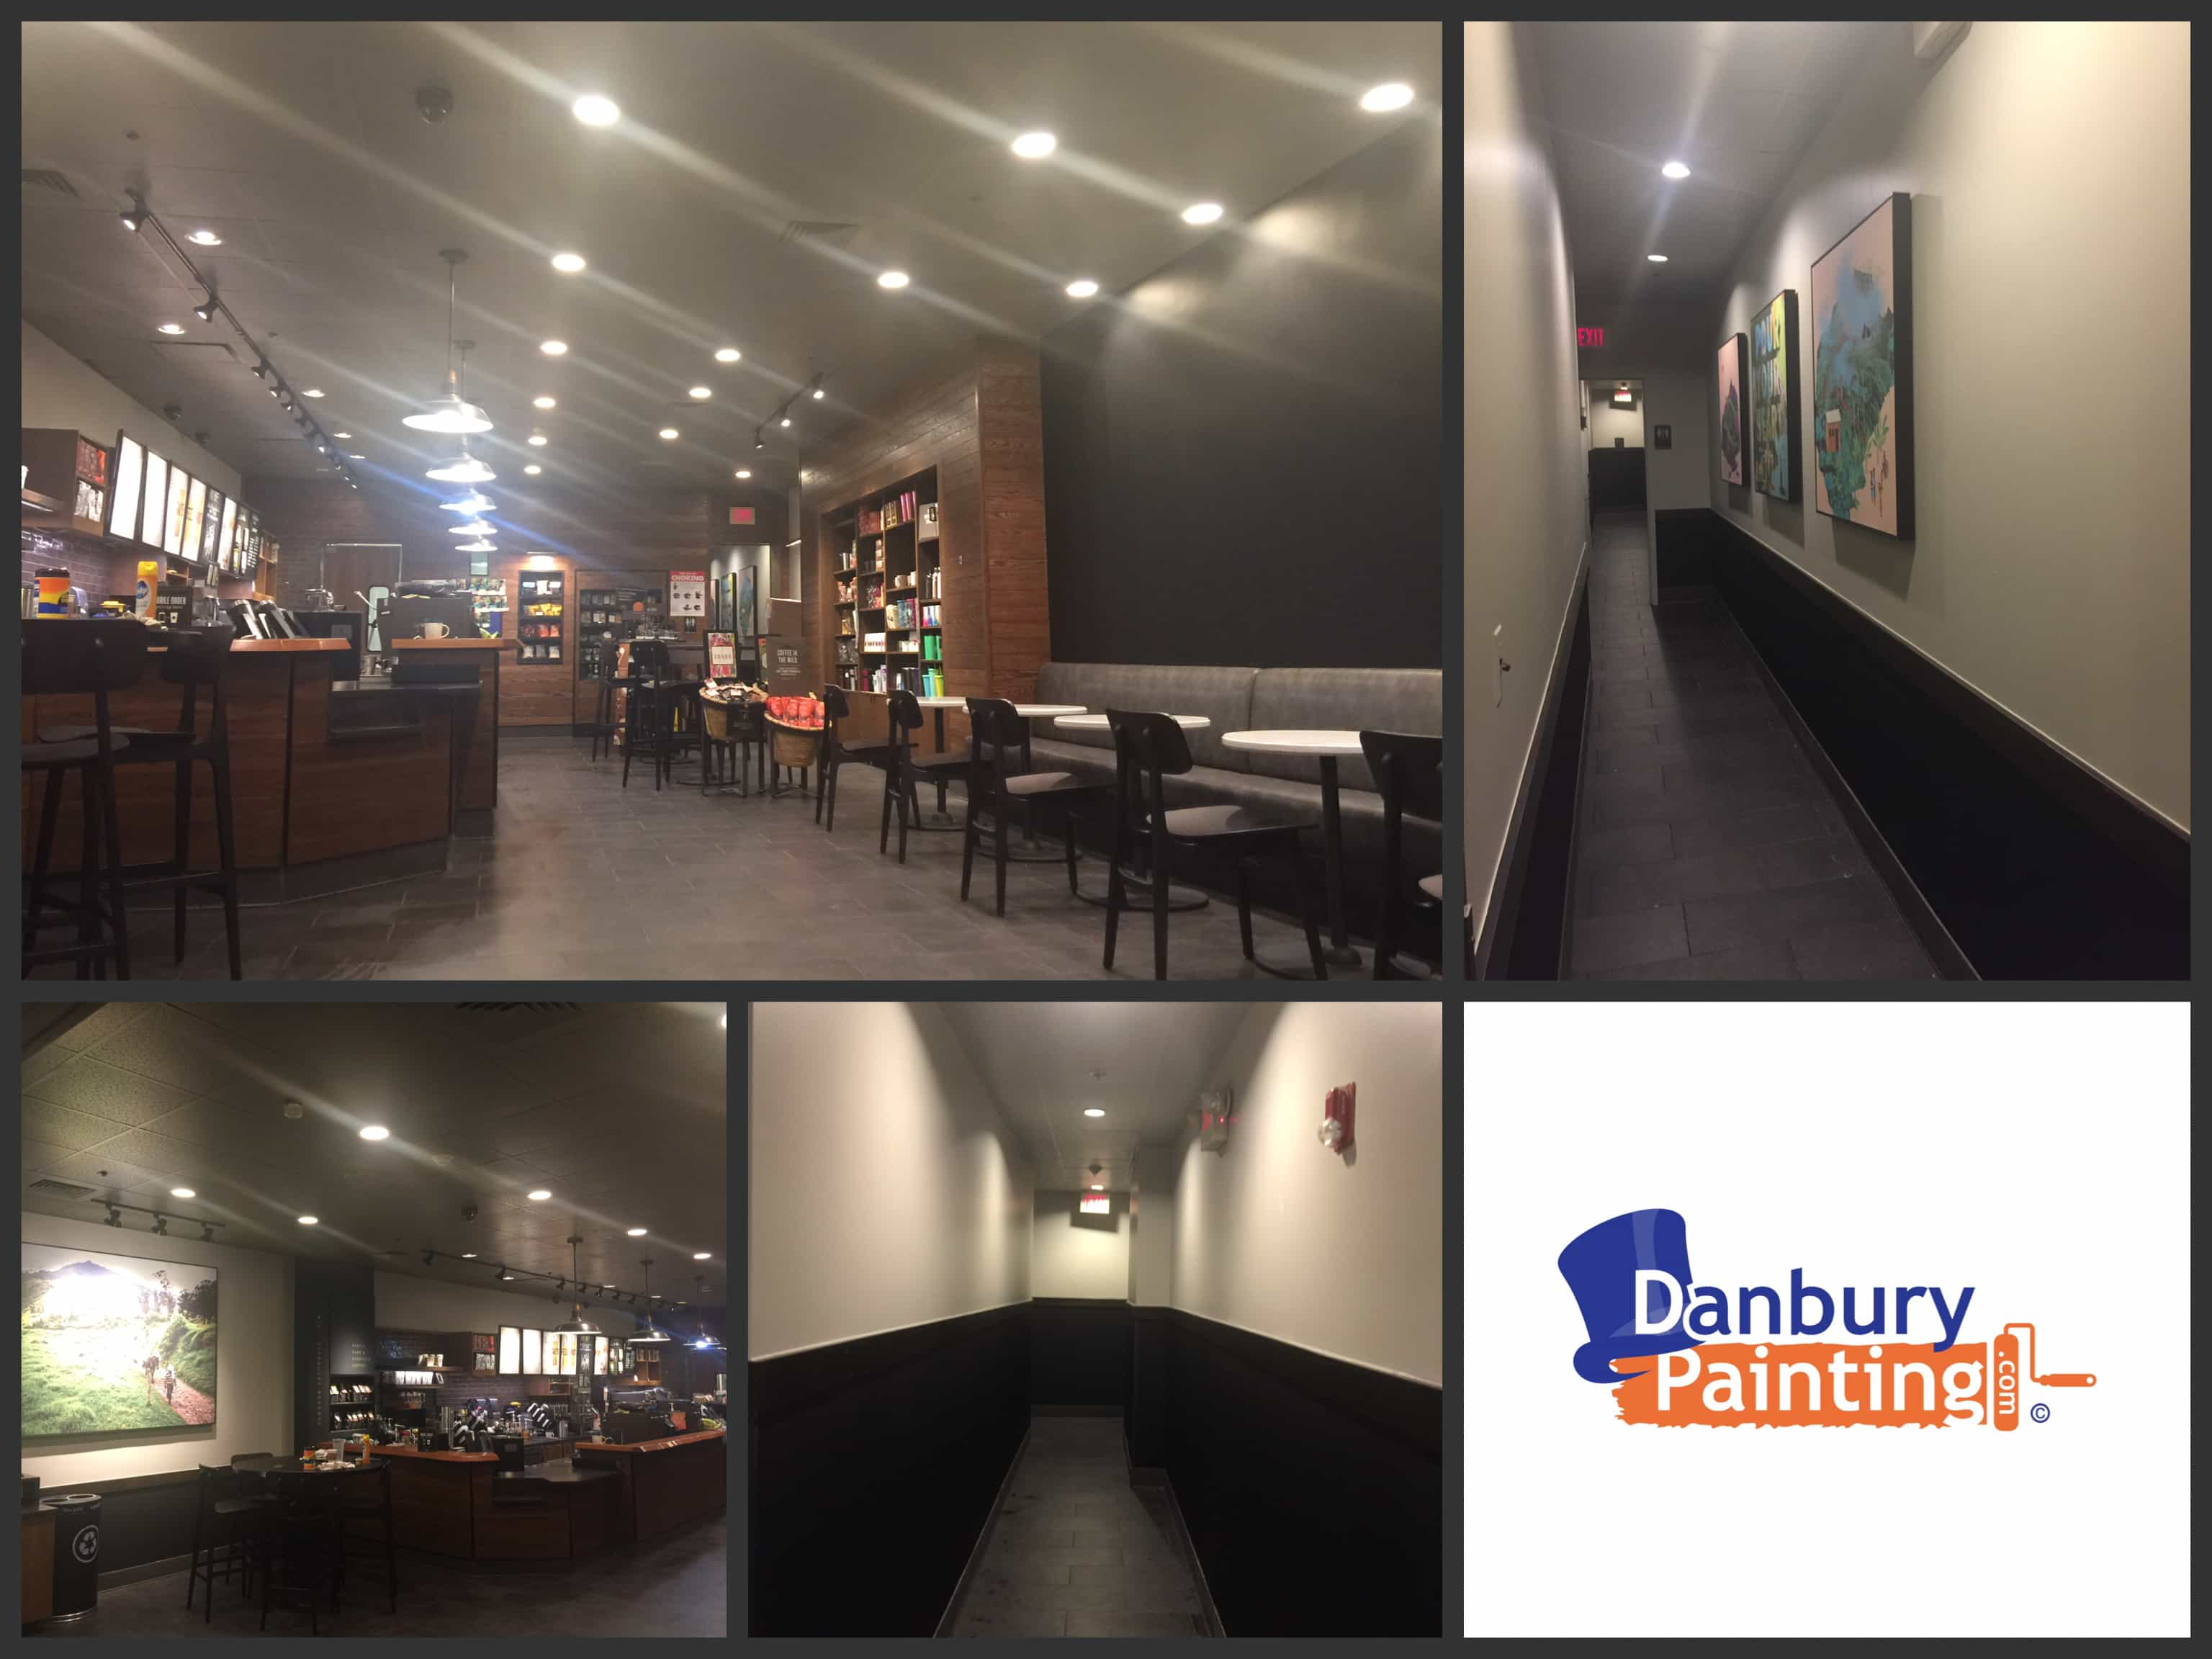 Starbucks fairfield ct Commercial Painting Company